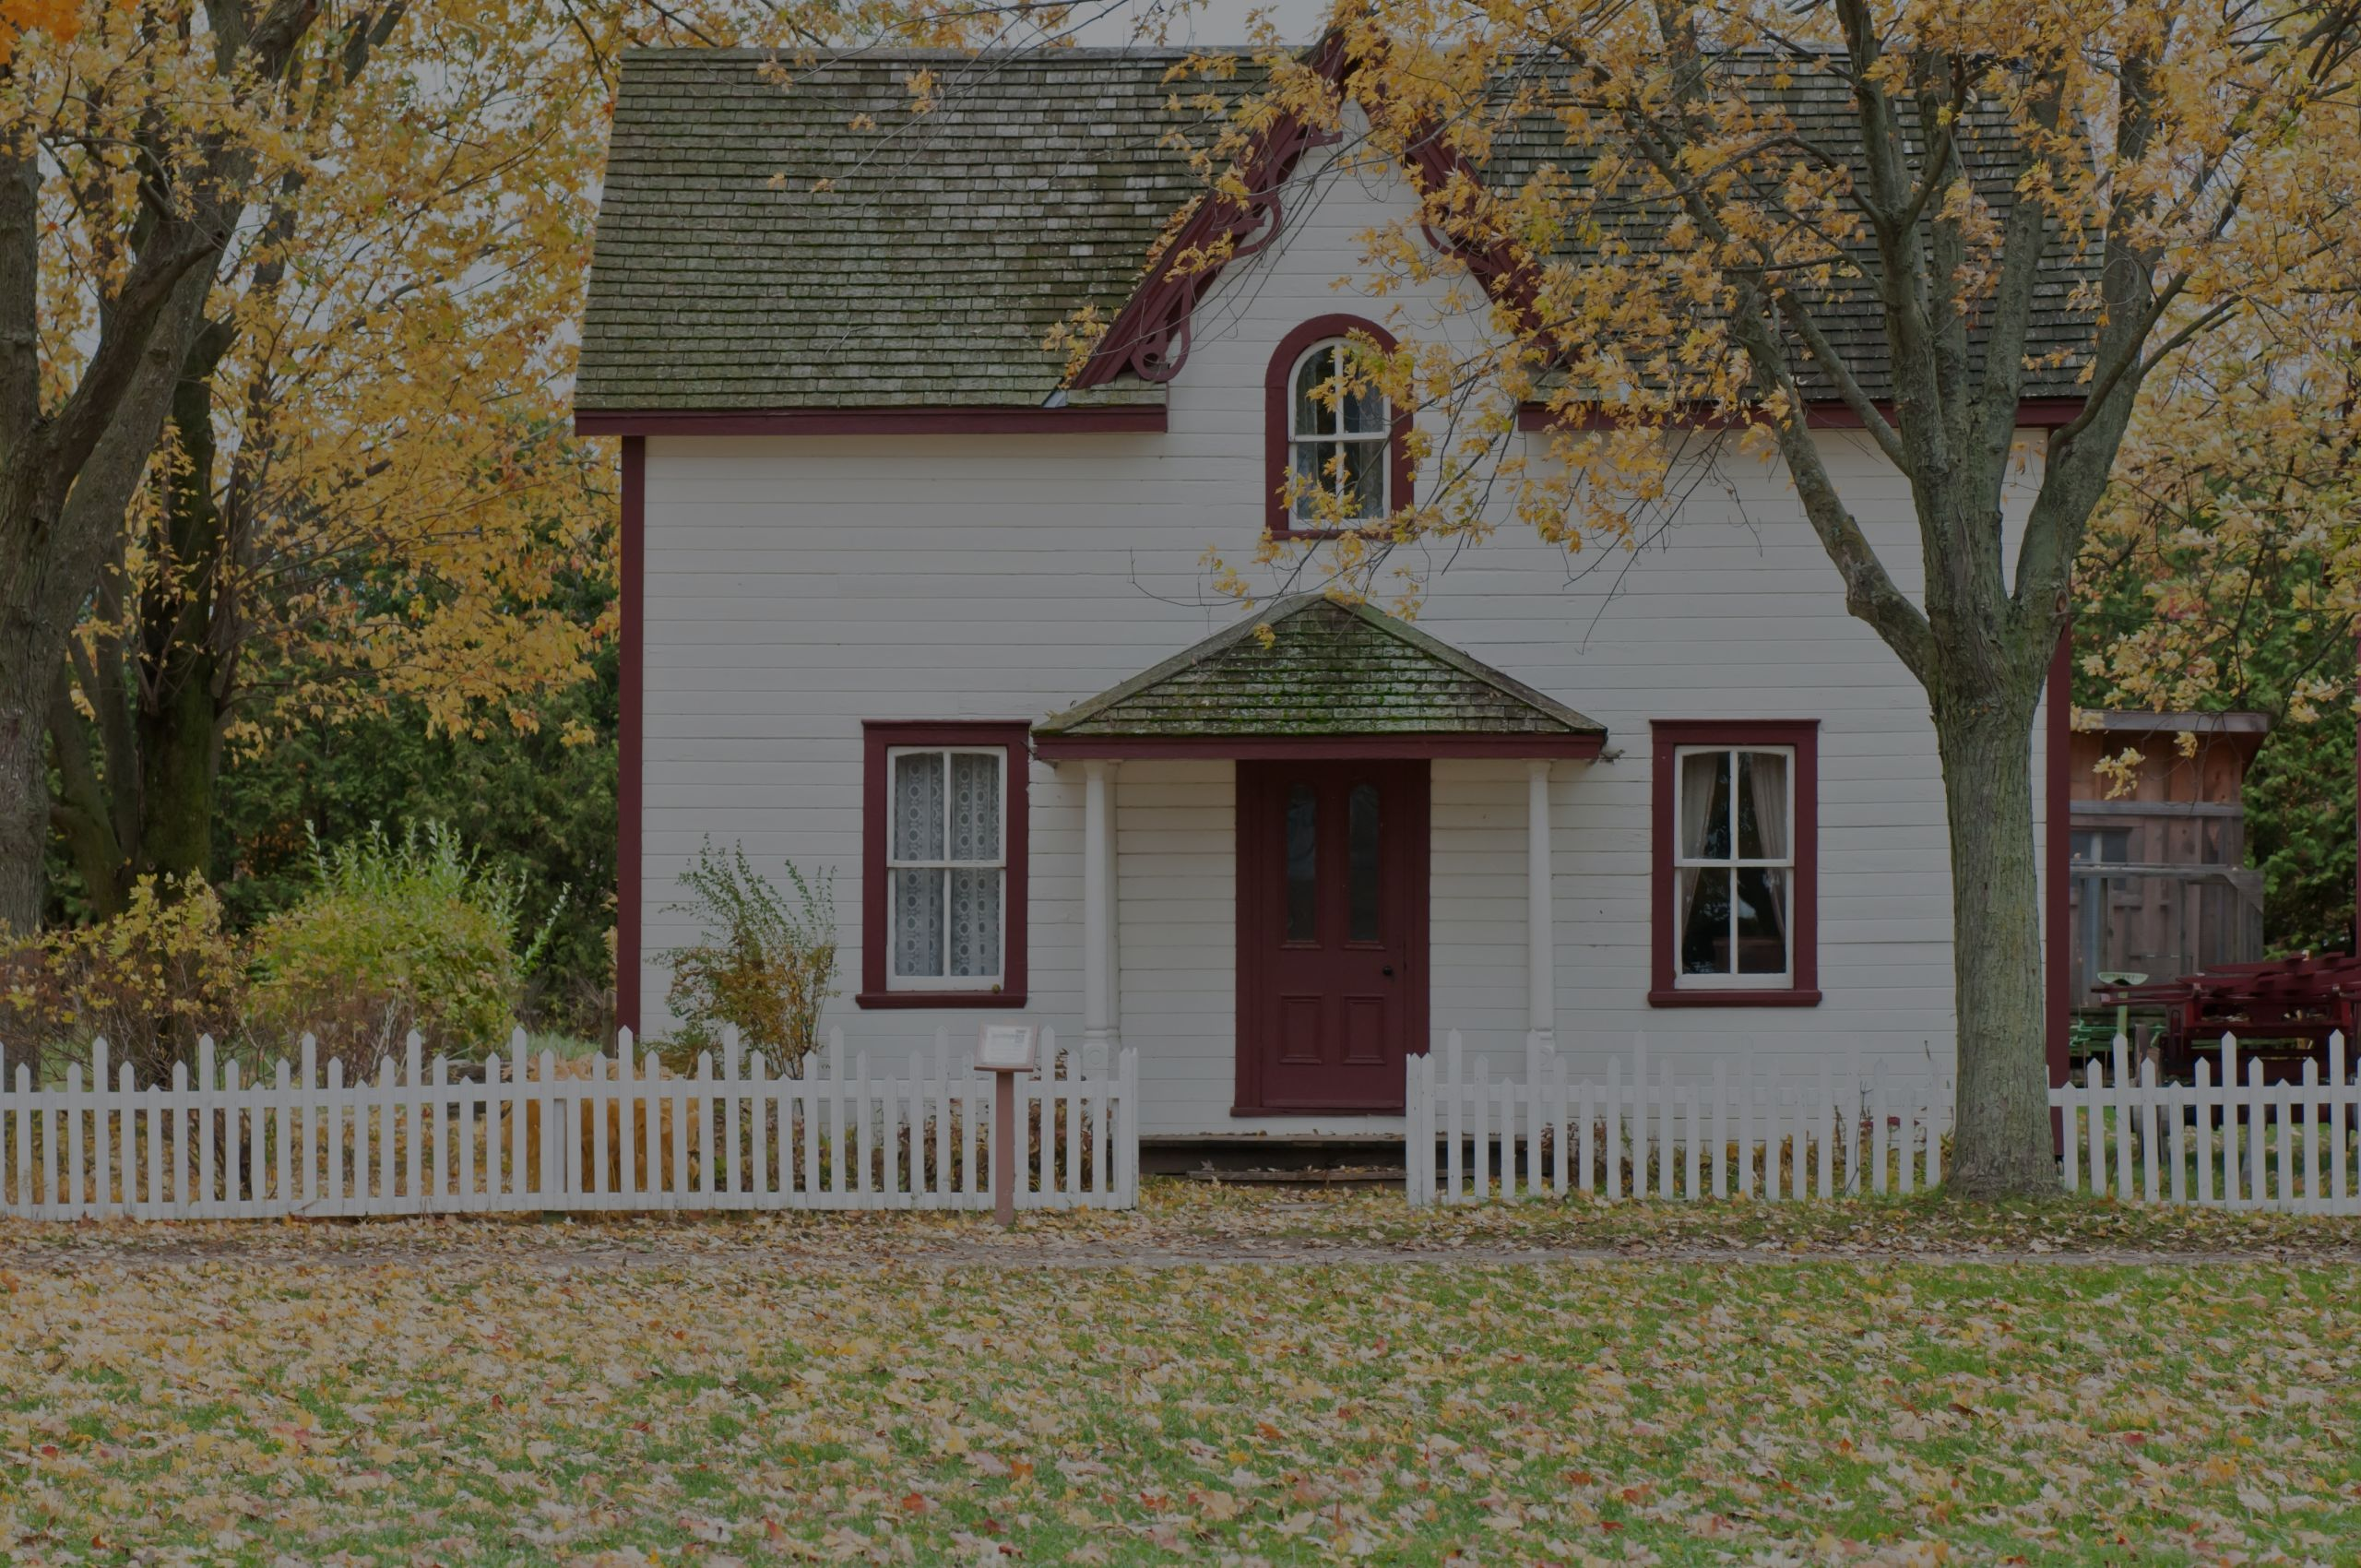 3 Considerations for Choosing the Right Tree for Your Property